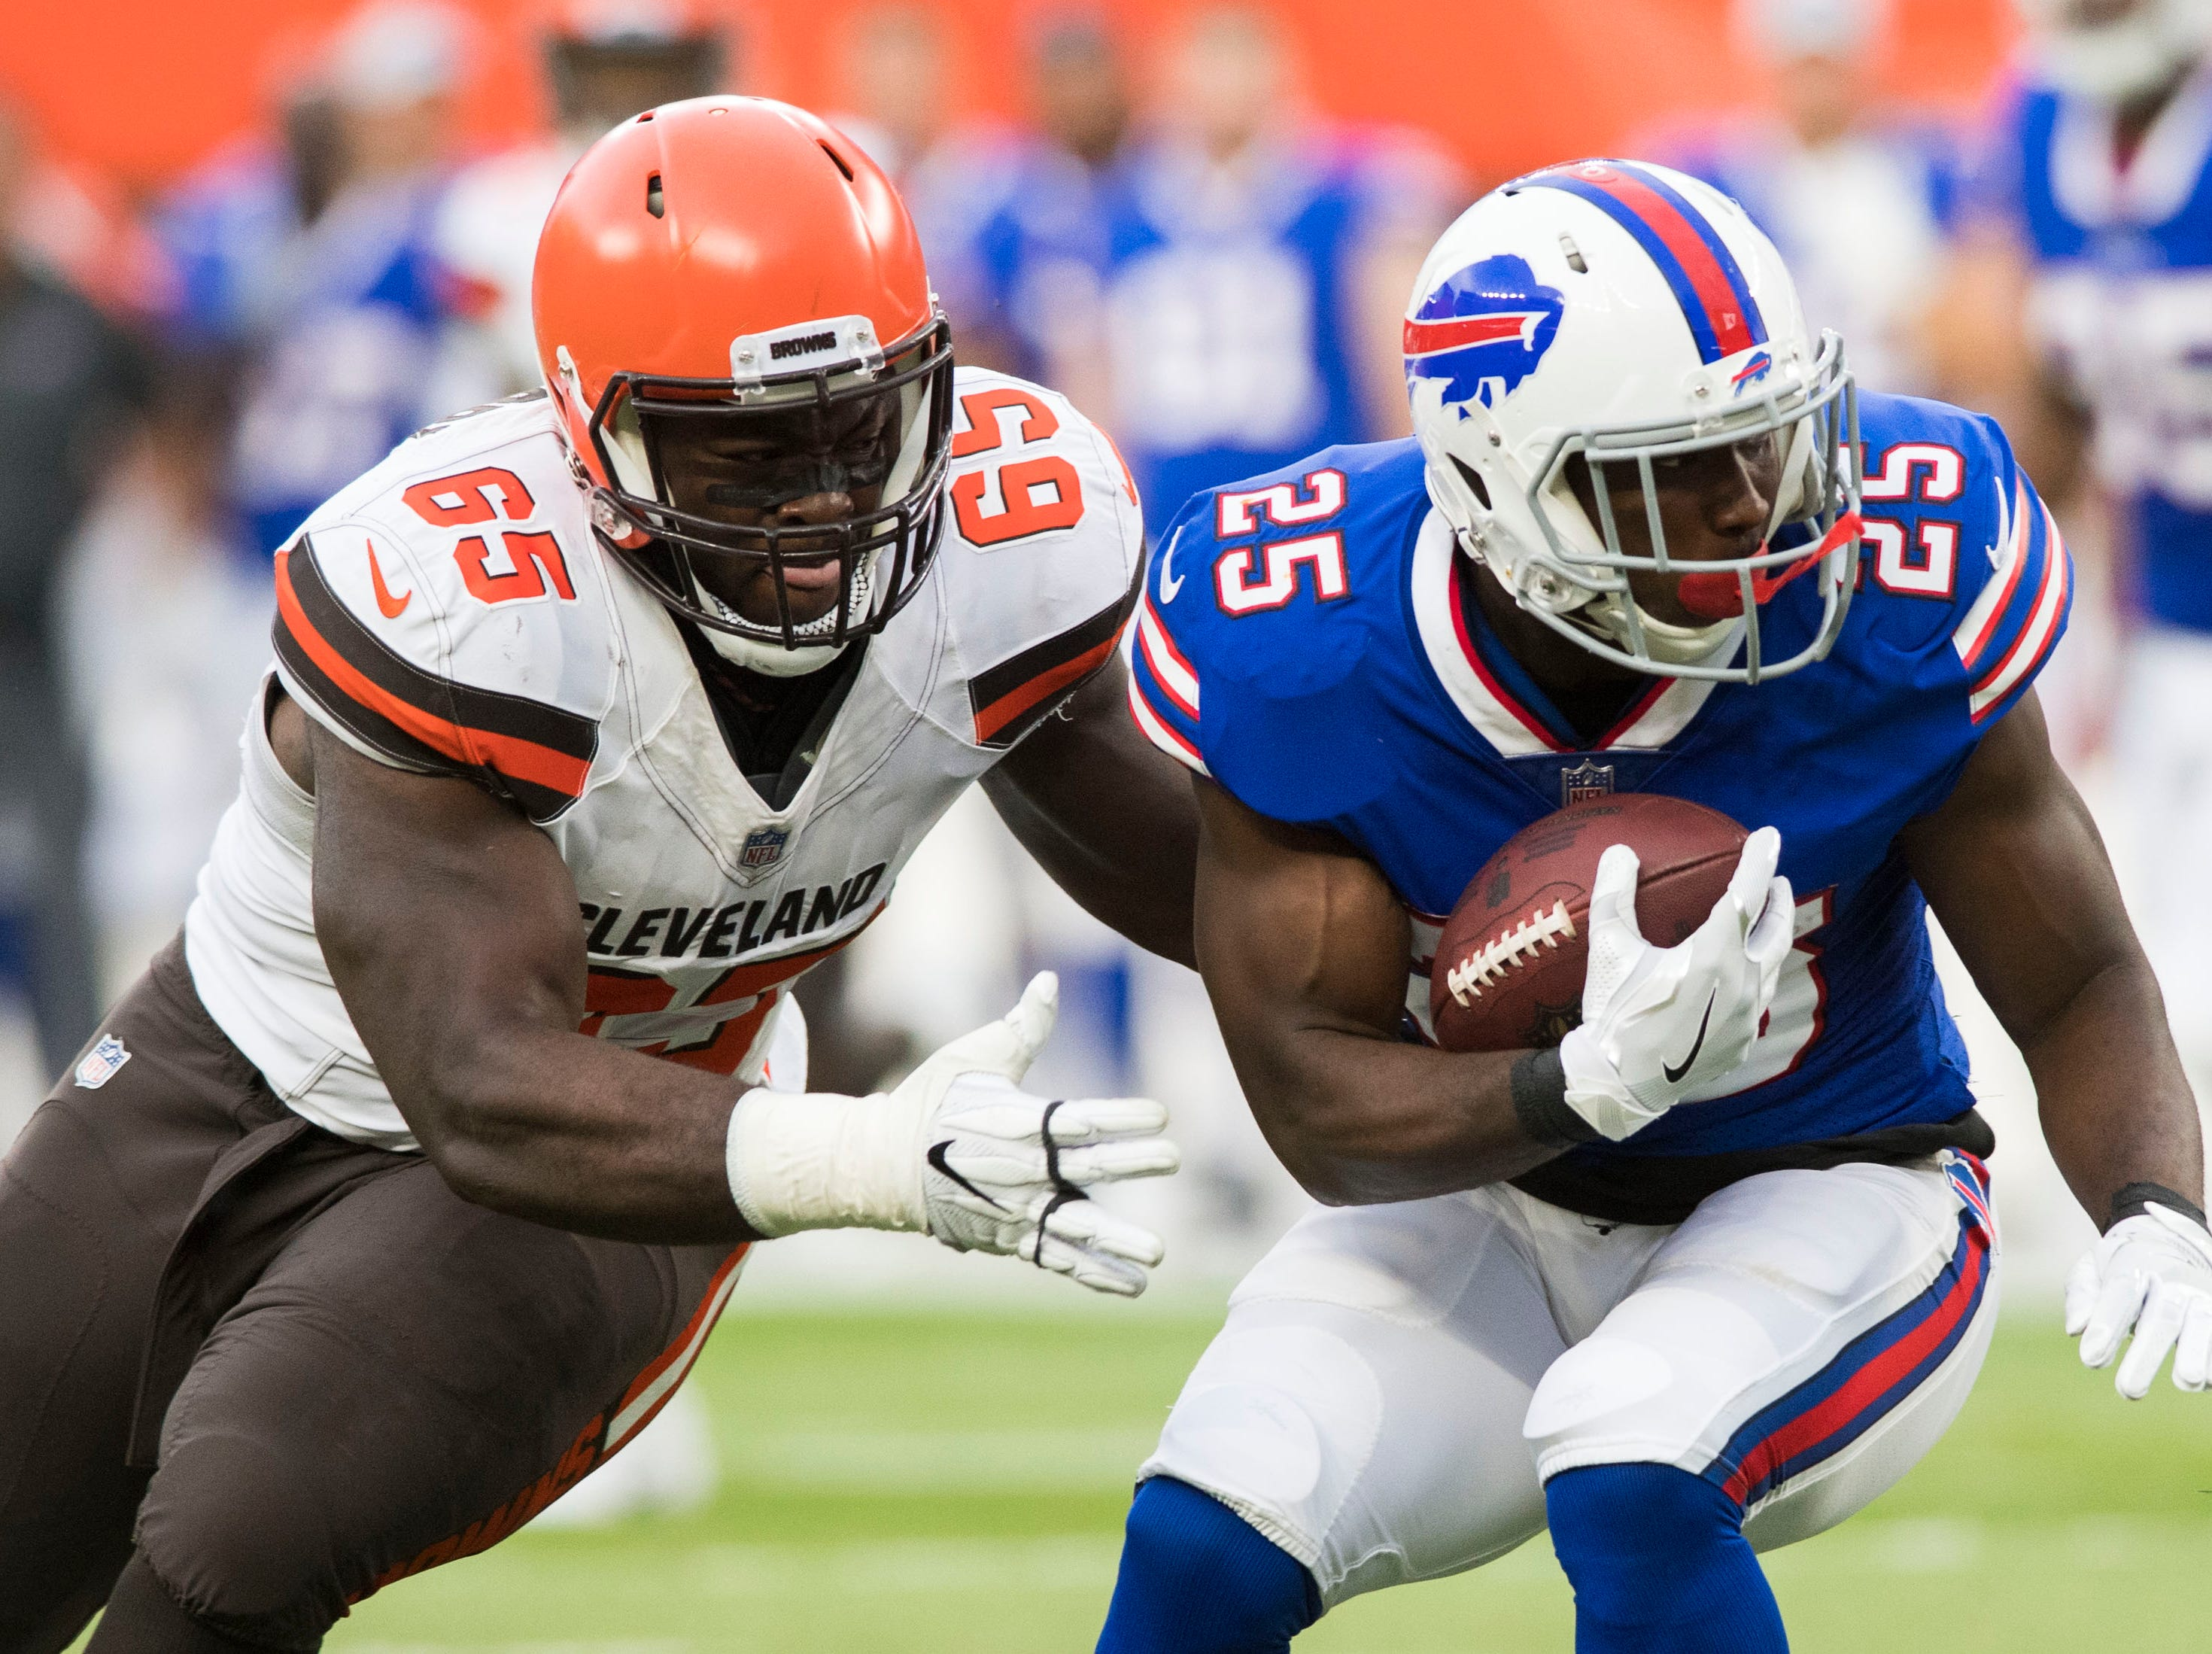 Cleveland Browns defensive tackle Larry Ogunjobi (65) tackles Buffalo Bills running back LeSean McCoy (25) during the first quarter at FirstEnergy Stadium.